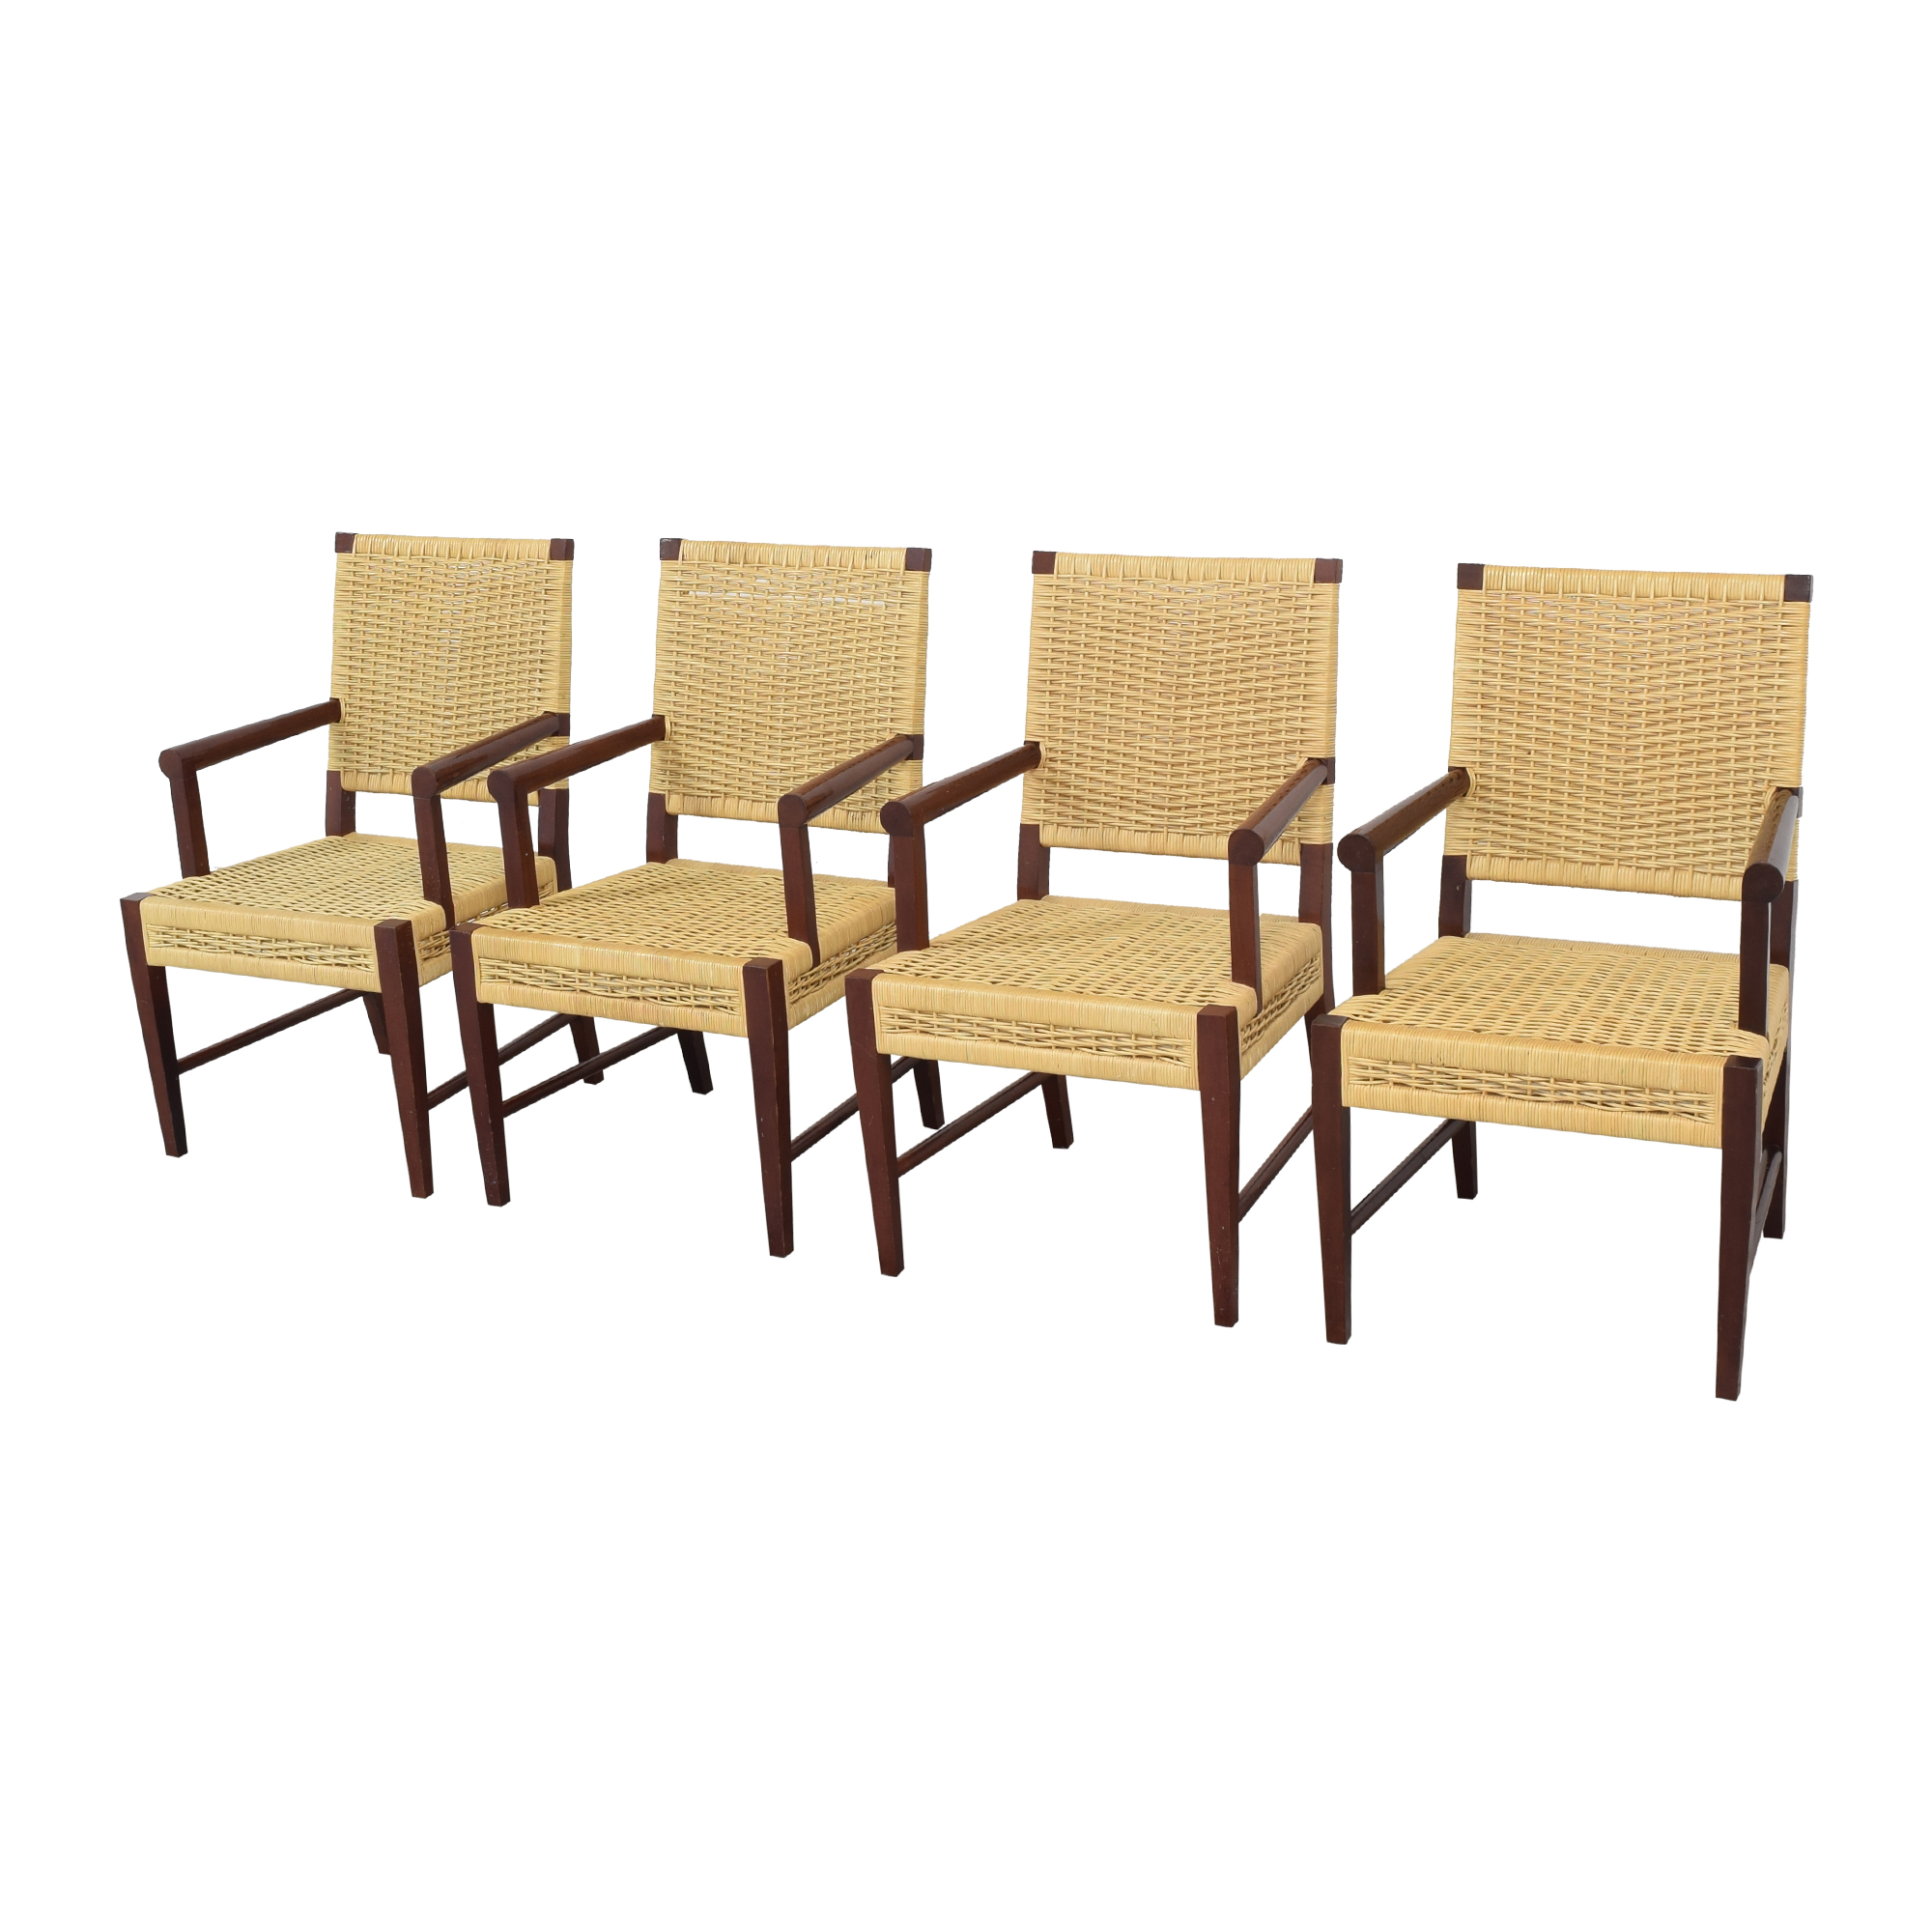 Donghia Donghia Dining Chairs in Merbau Wood with Raffia Weaving nyc